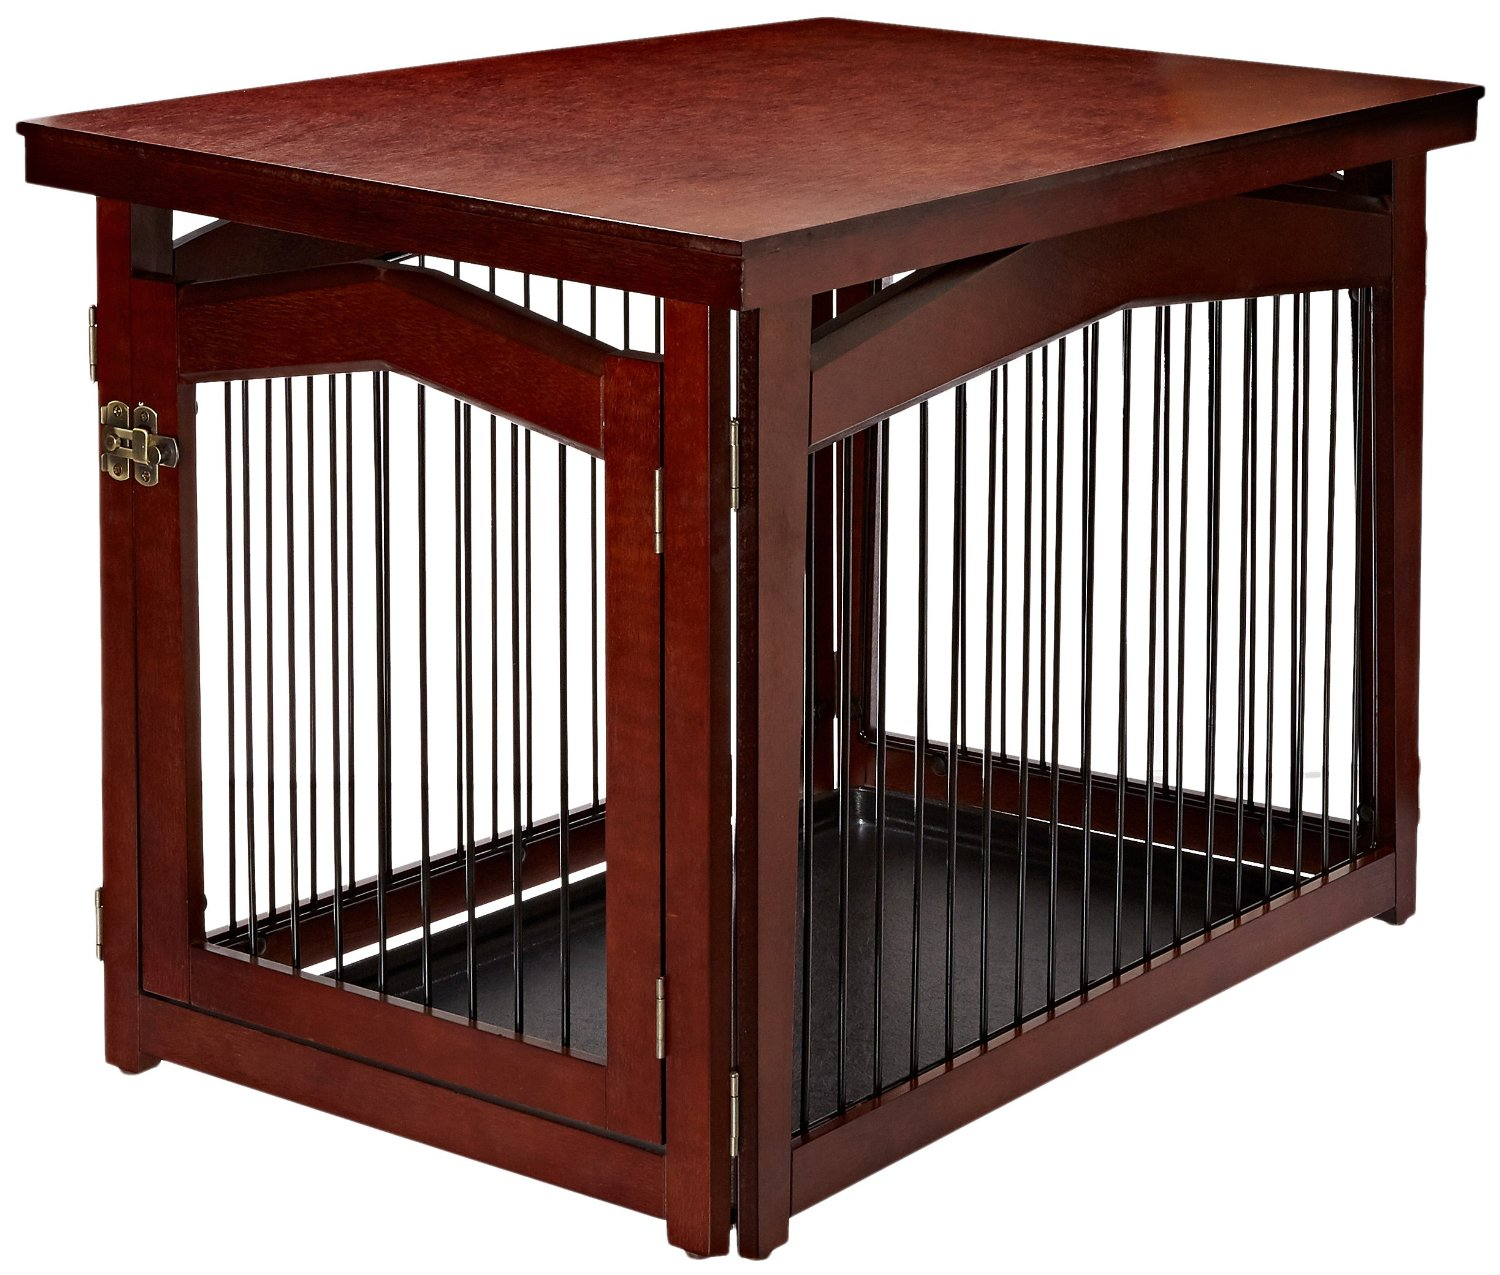 Total fab dog crates that look like furniture pieces Wooden crates furniture